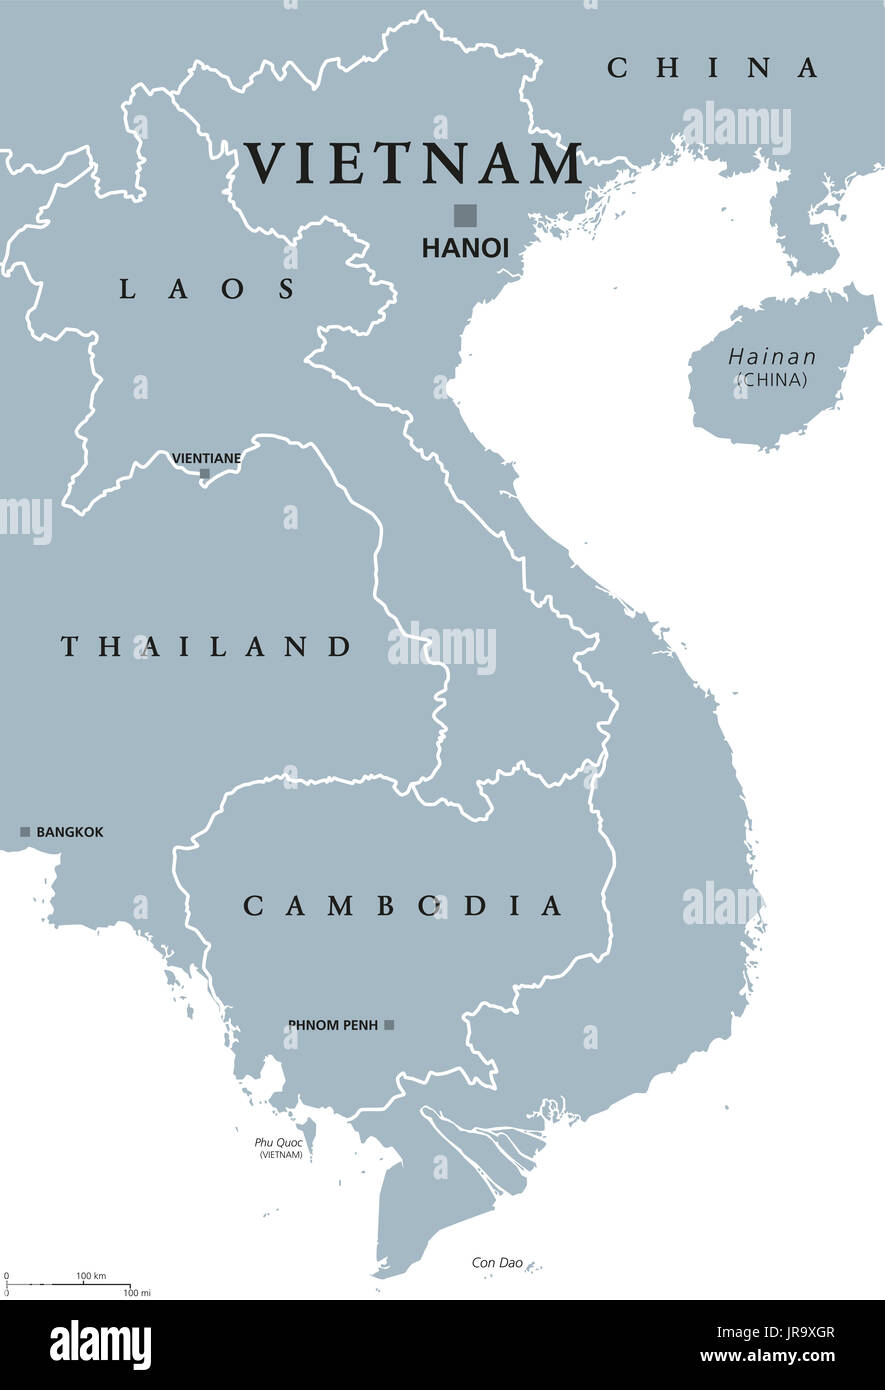 Vietnam Political Map With Capital Hanoi And Borders English - China political map in english